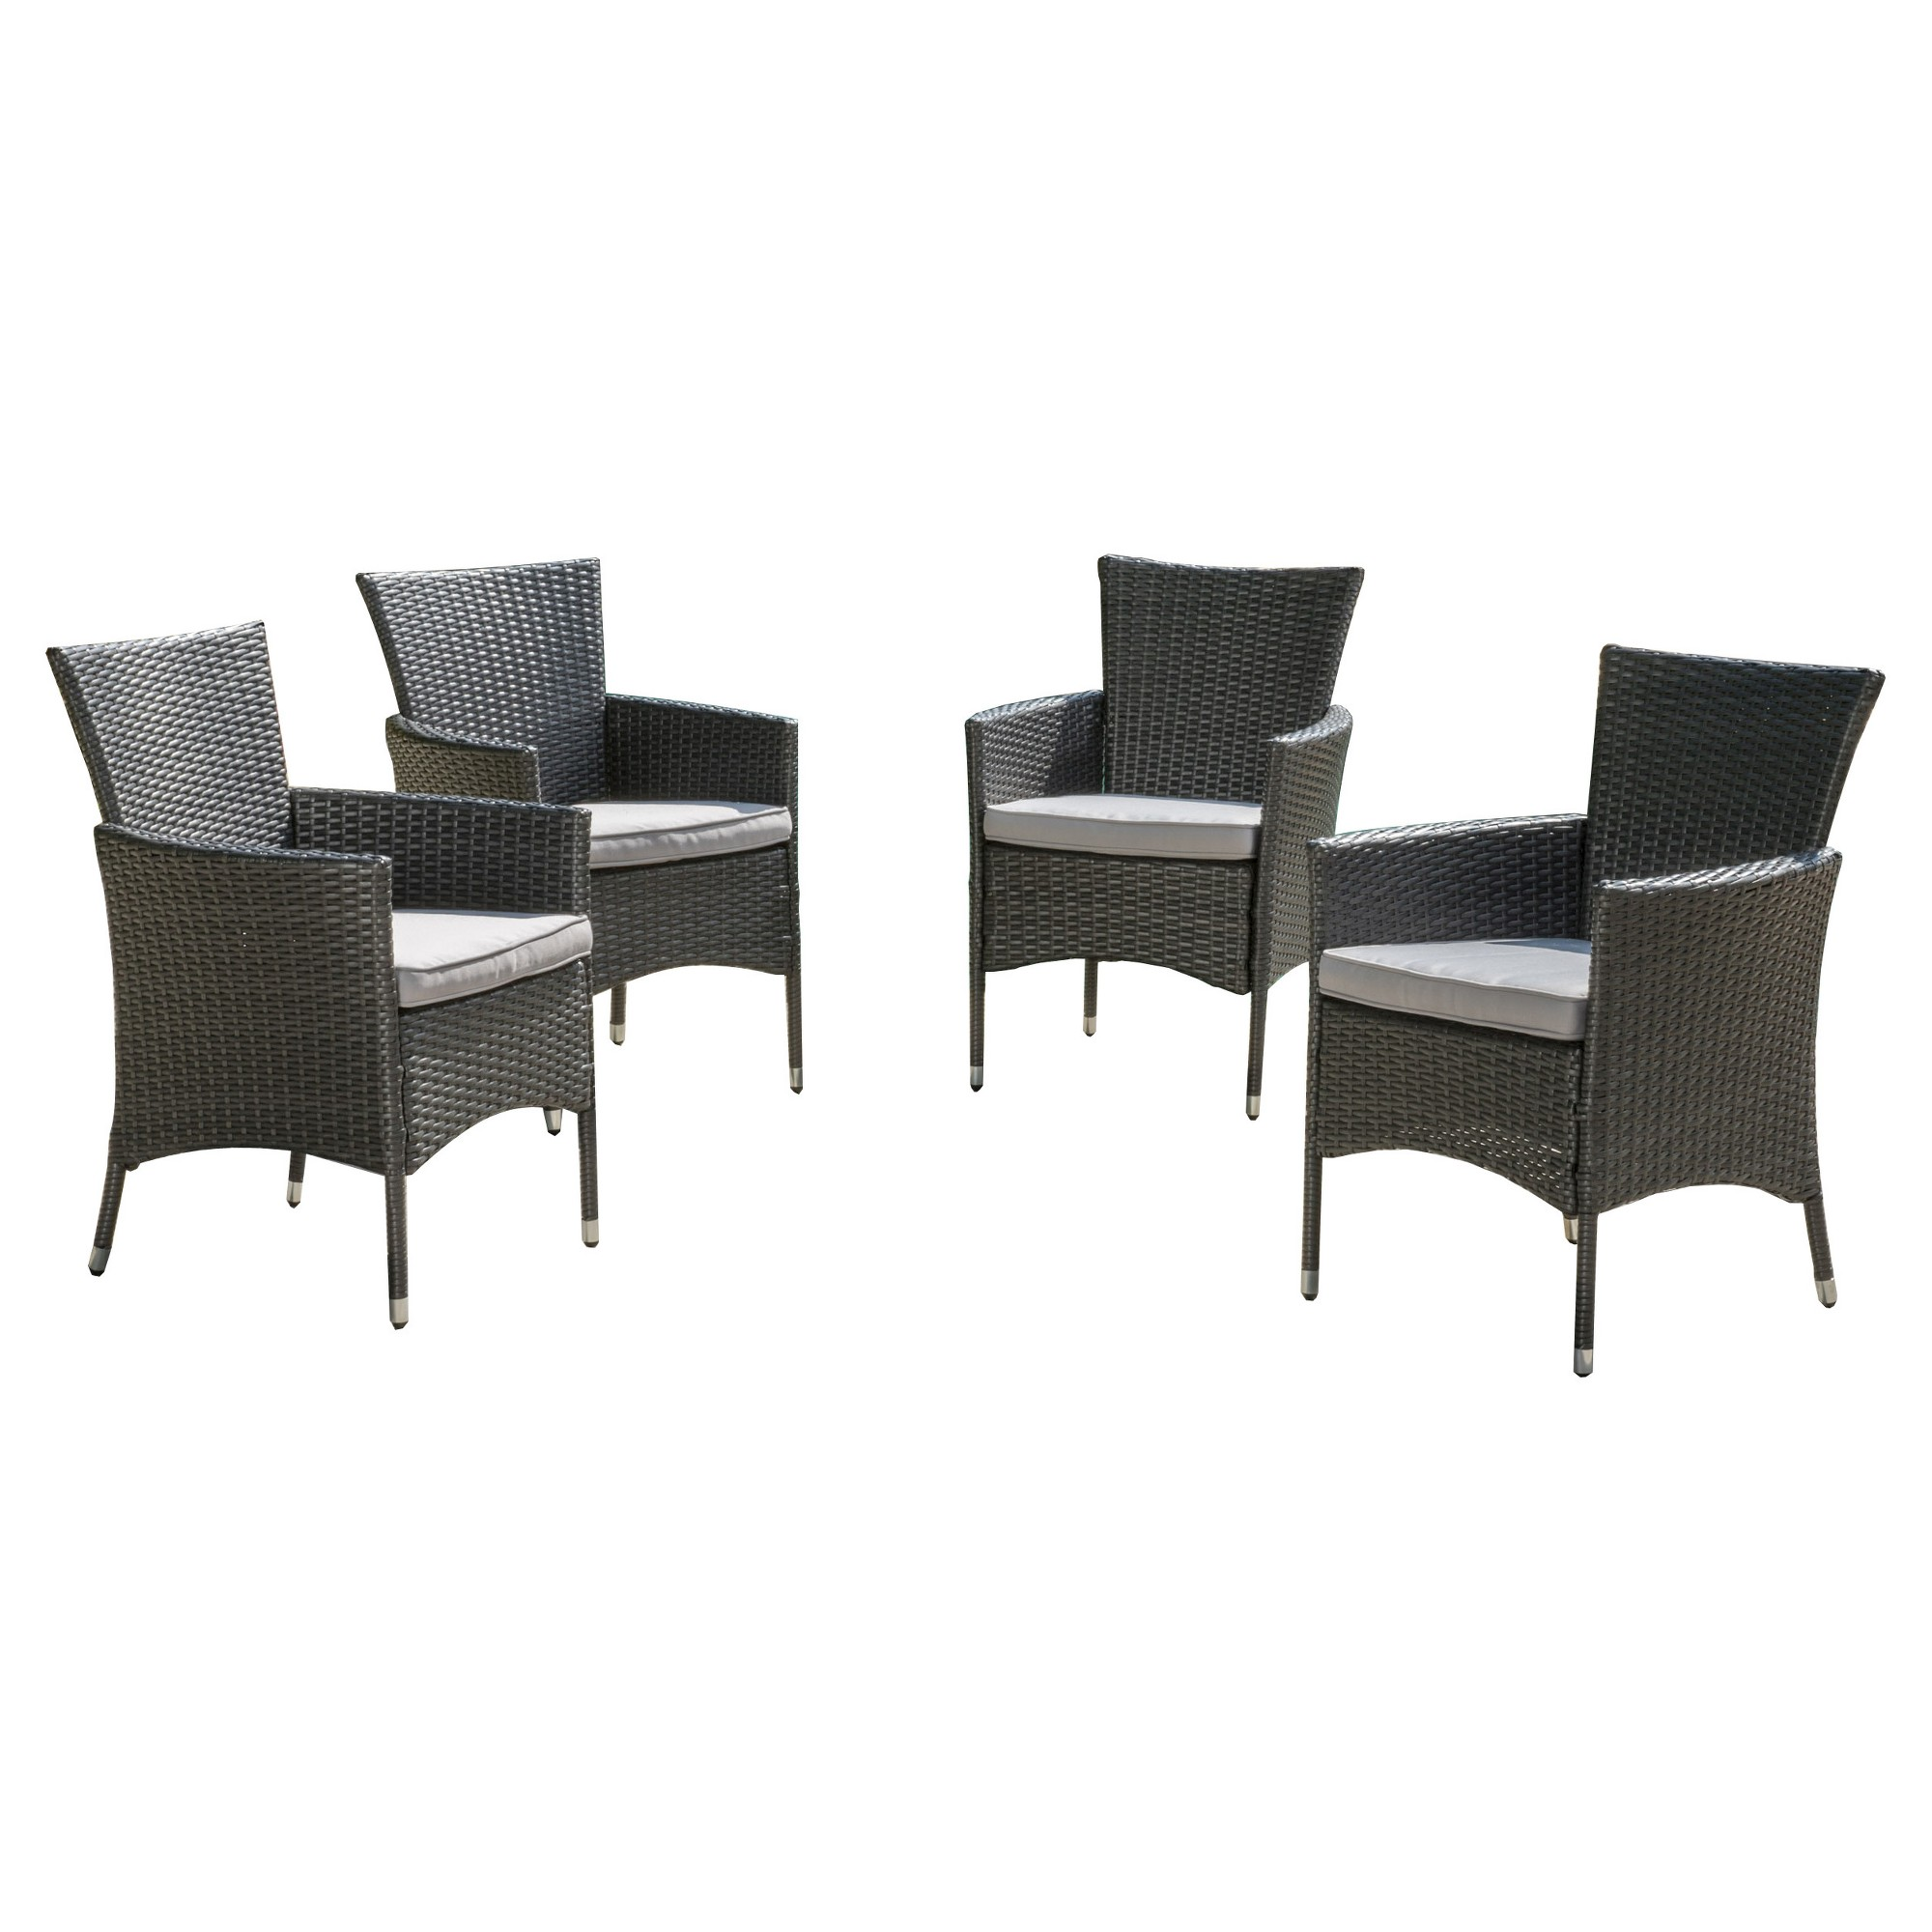 Malta Set of 4 Wicker Patio Dining Chair with Cushions - Gray ...